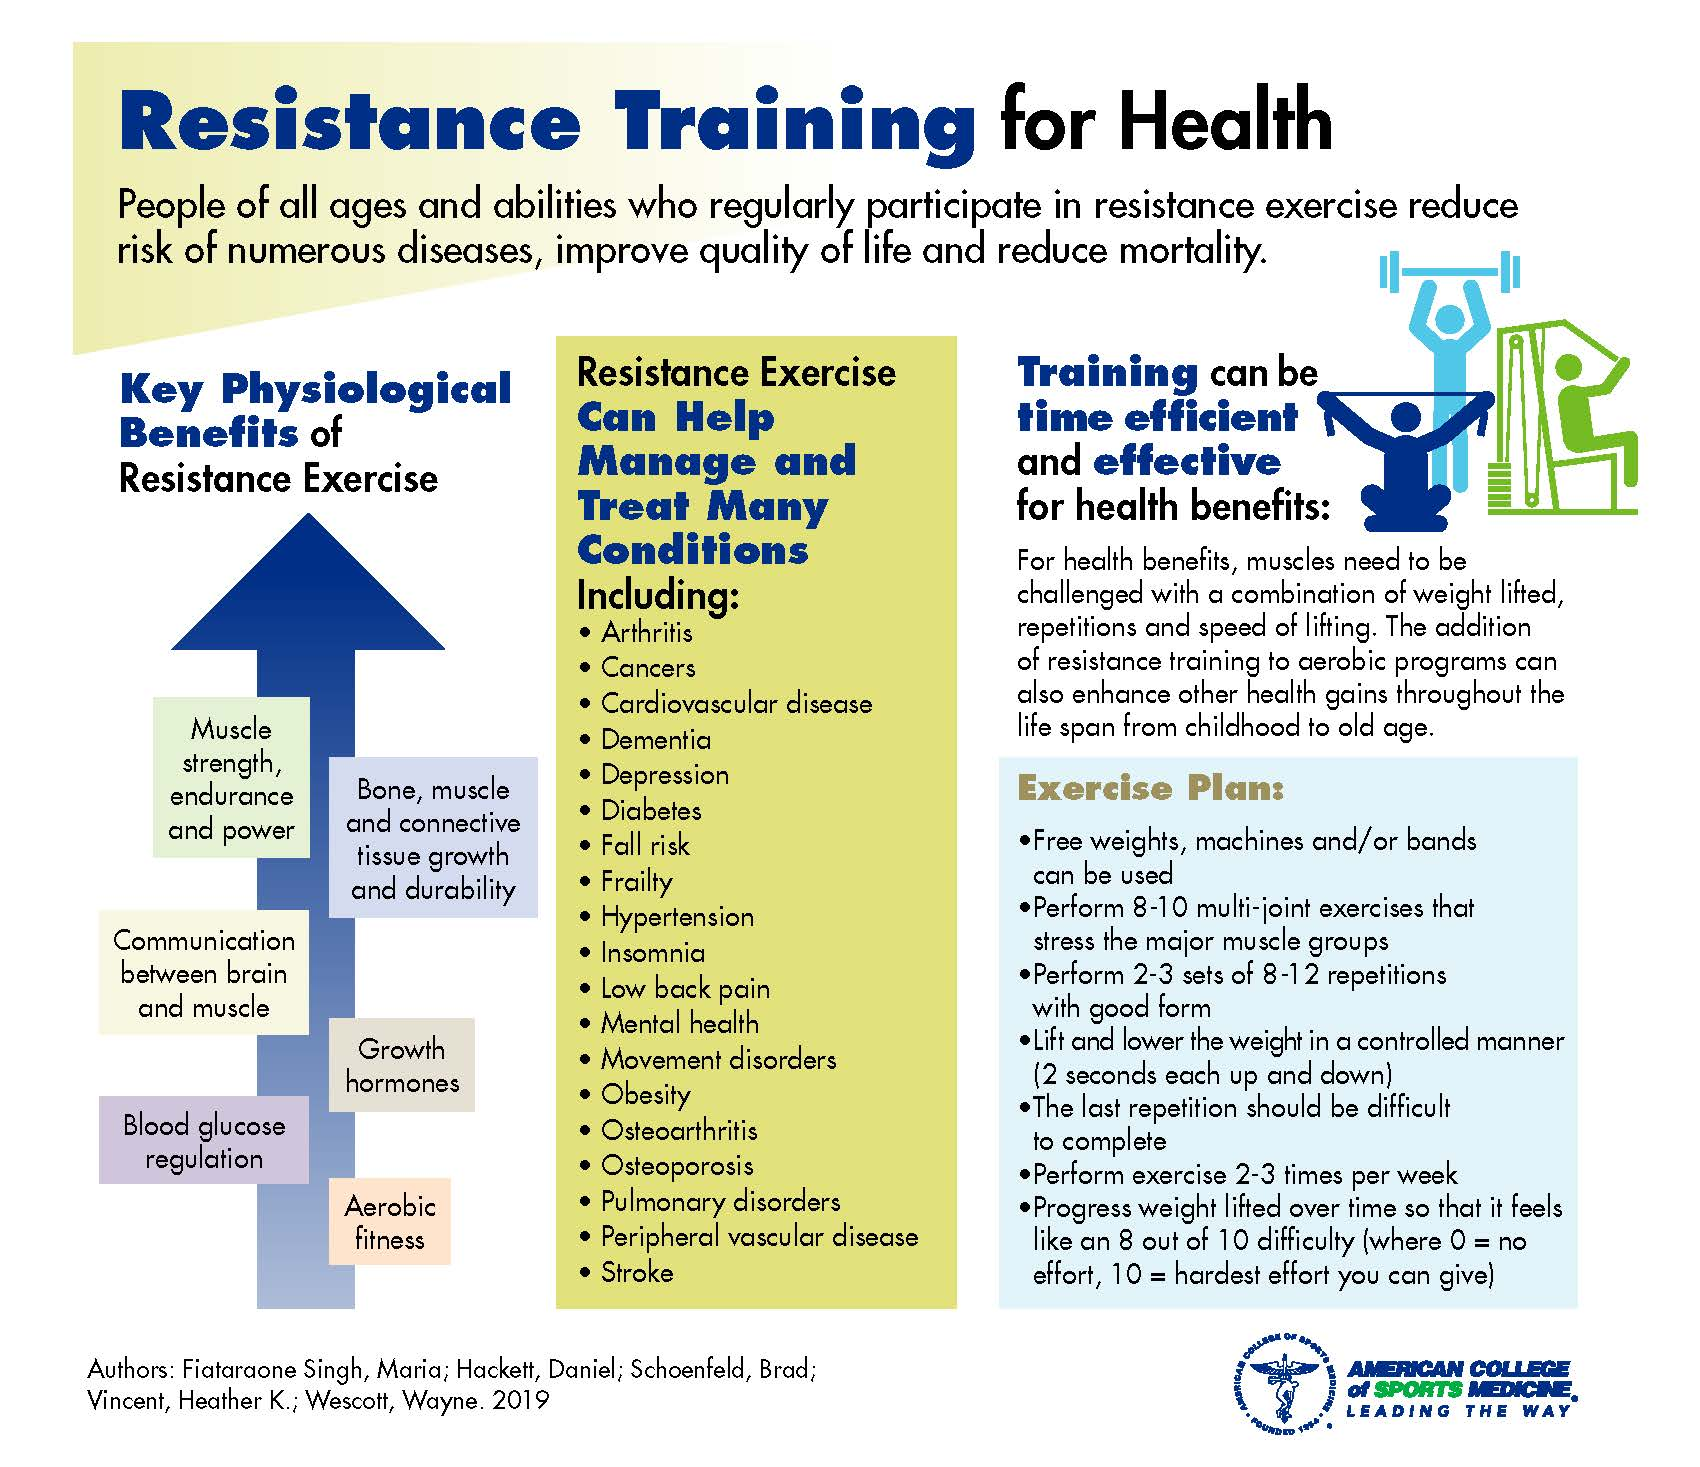 INFOGRAPHIC-ACSM-resistance-training-for-health